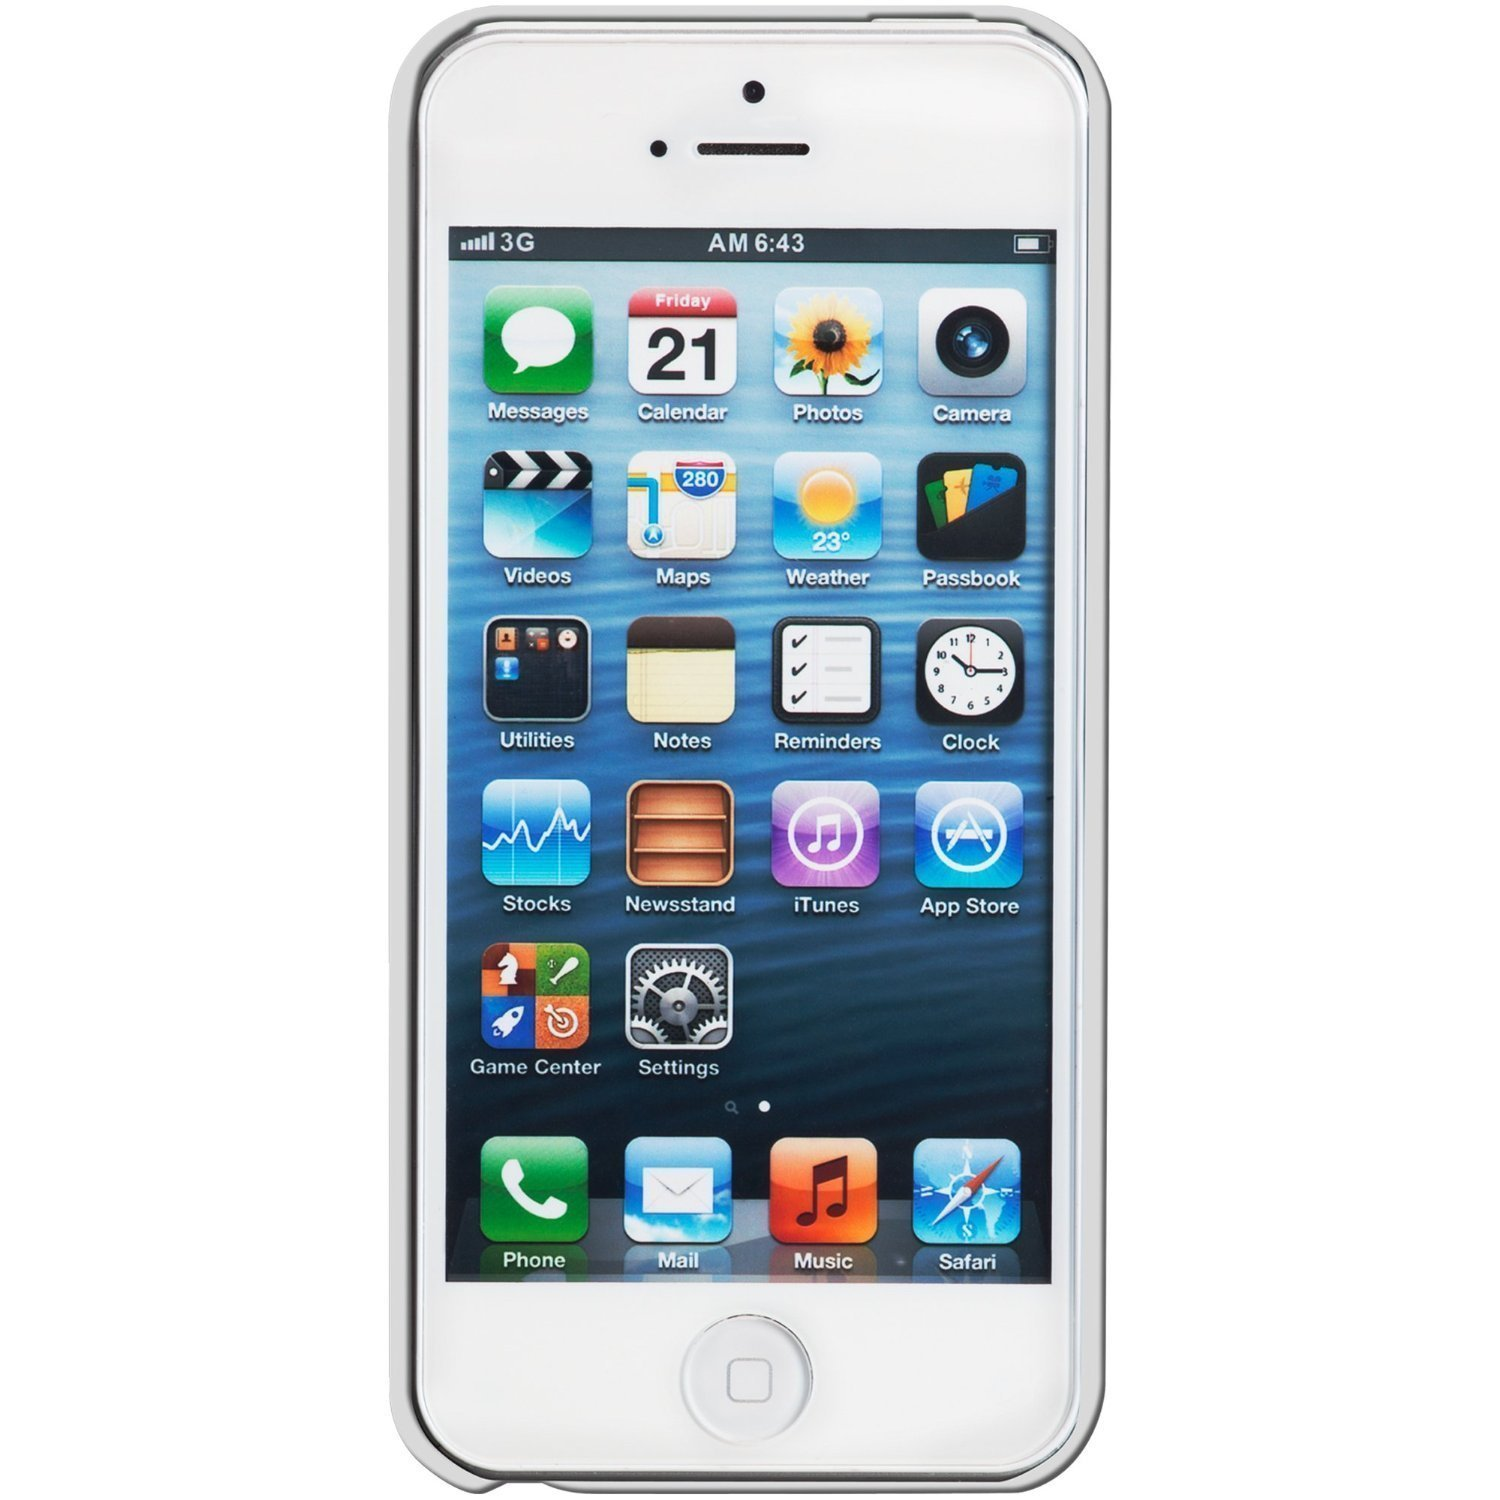 a01abd96659309 Amazon.com: Apple iPhone 5, AT&T, 16GB - White (Renewed): Cell Phones &  Accessories